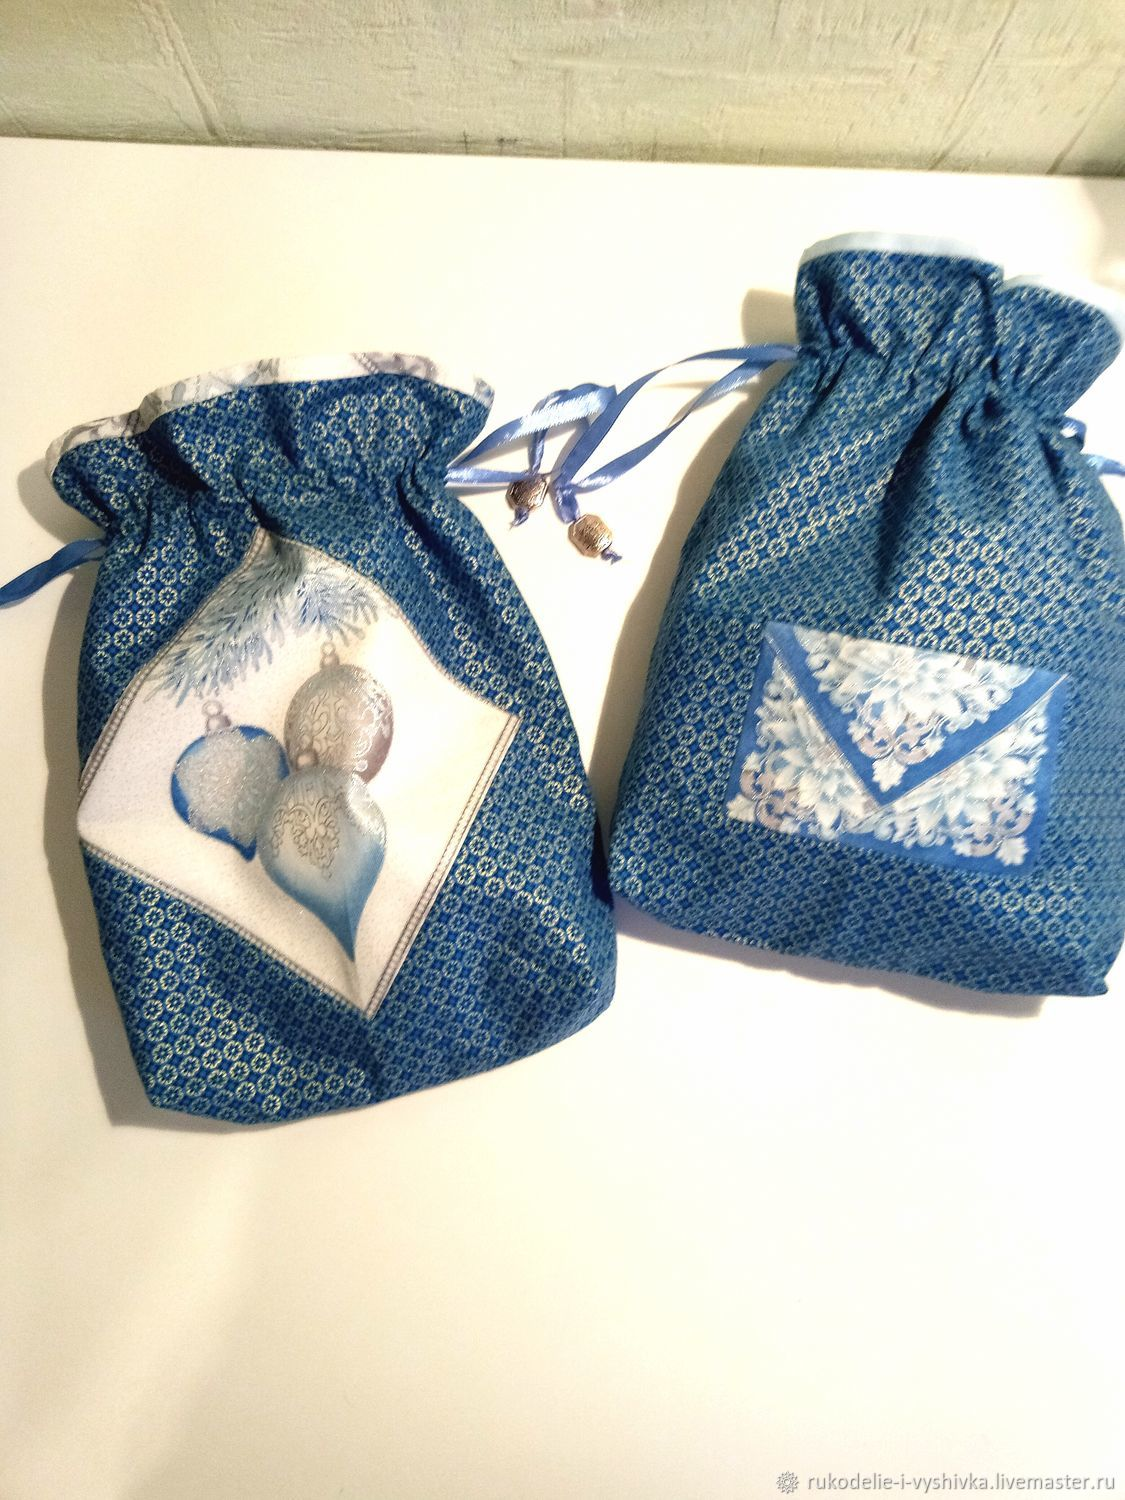 Bags for gifts: Bags for new year gifts, Gift pouch, Gatchina,  Фото №1